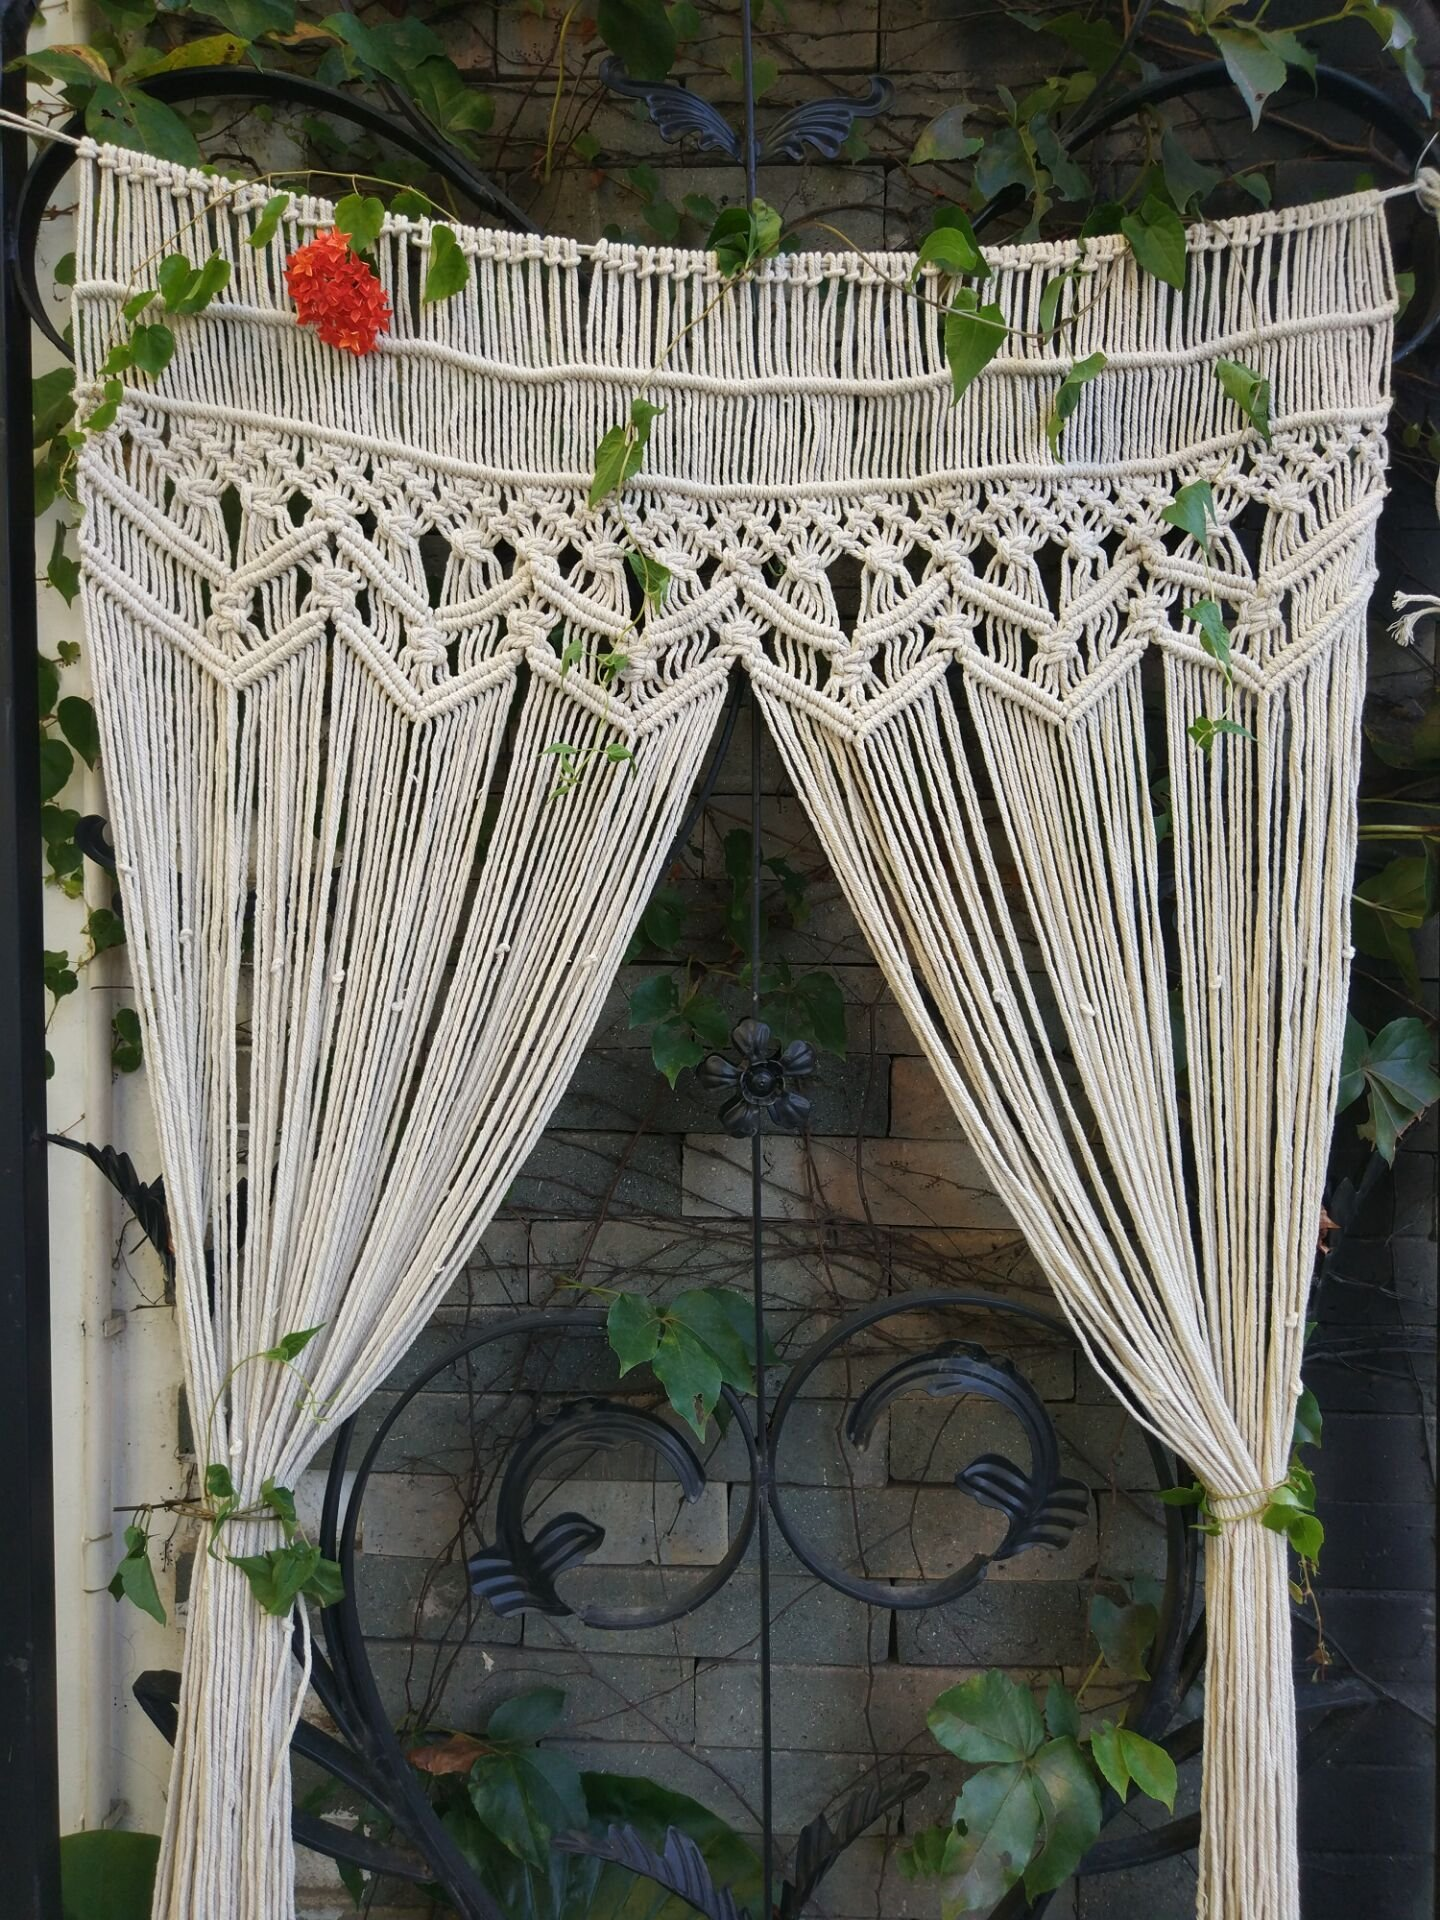 Cheap Macrame Curtains Pattern Find Macrame Curtains Pattern Deals On Line At Alibaba Com